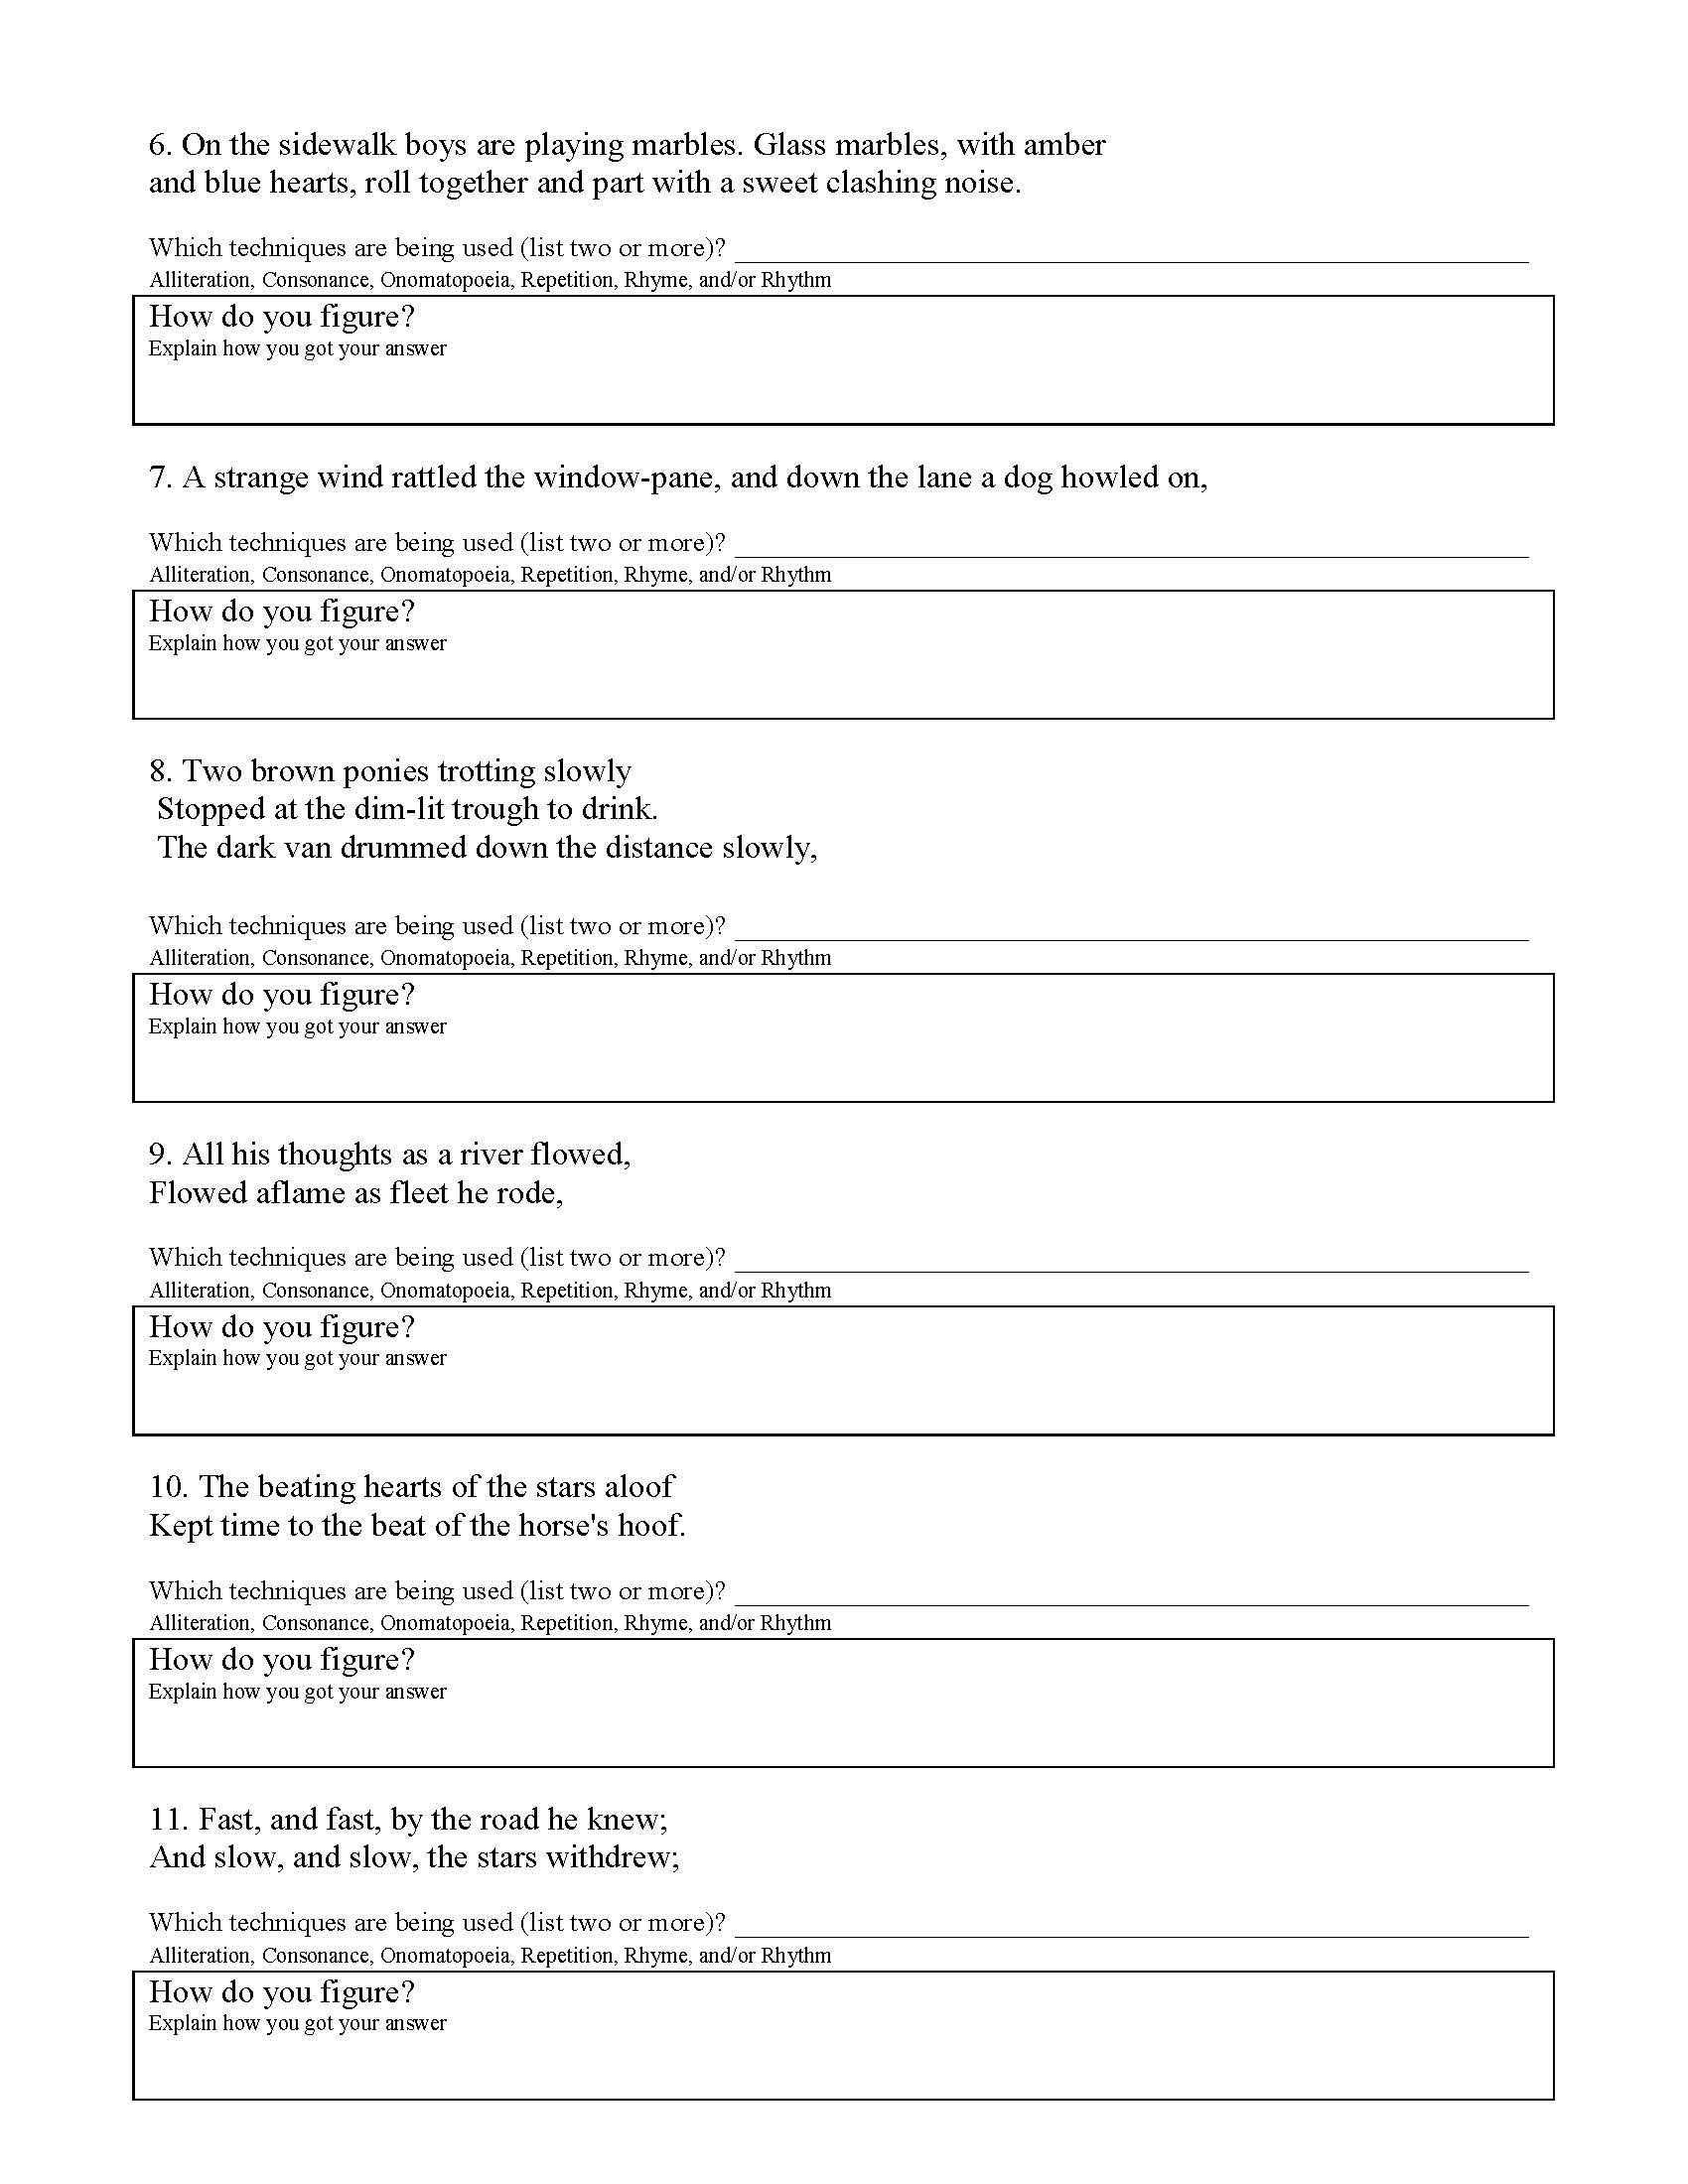 Poetic Devices Worksheet 2 | Preview